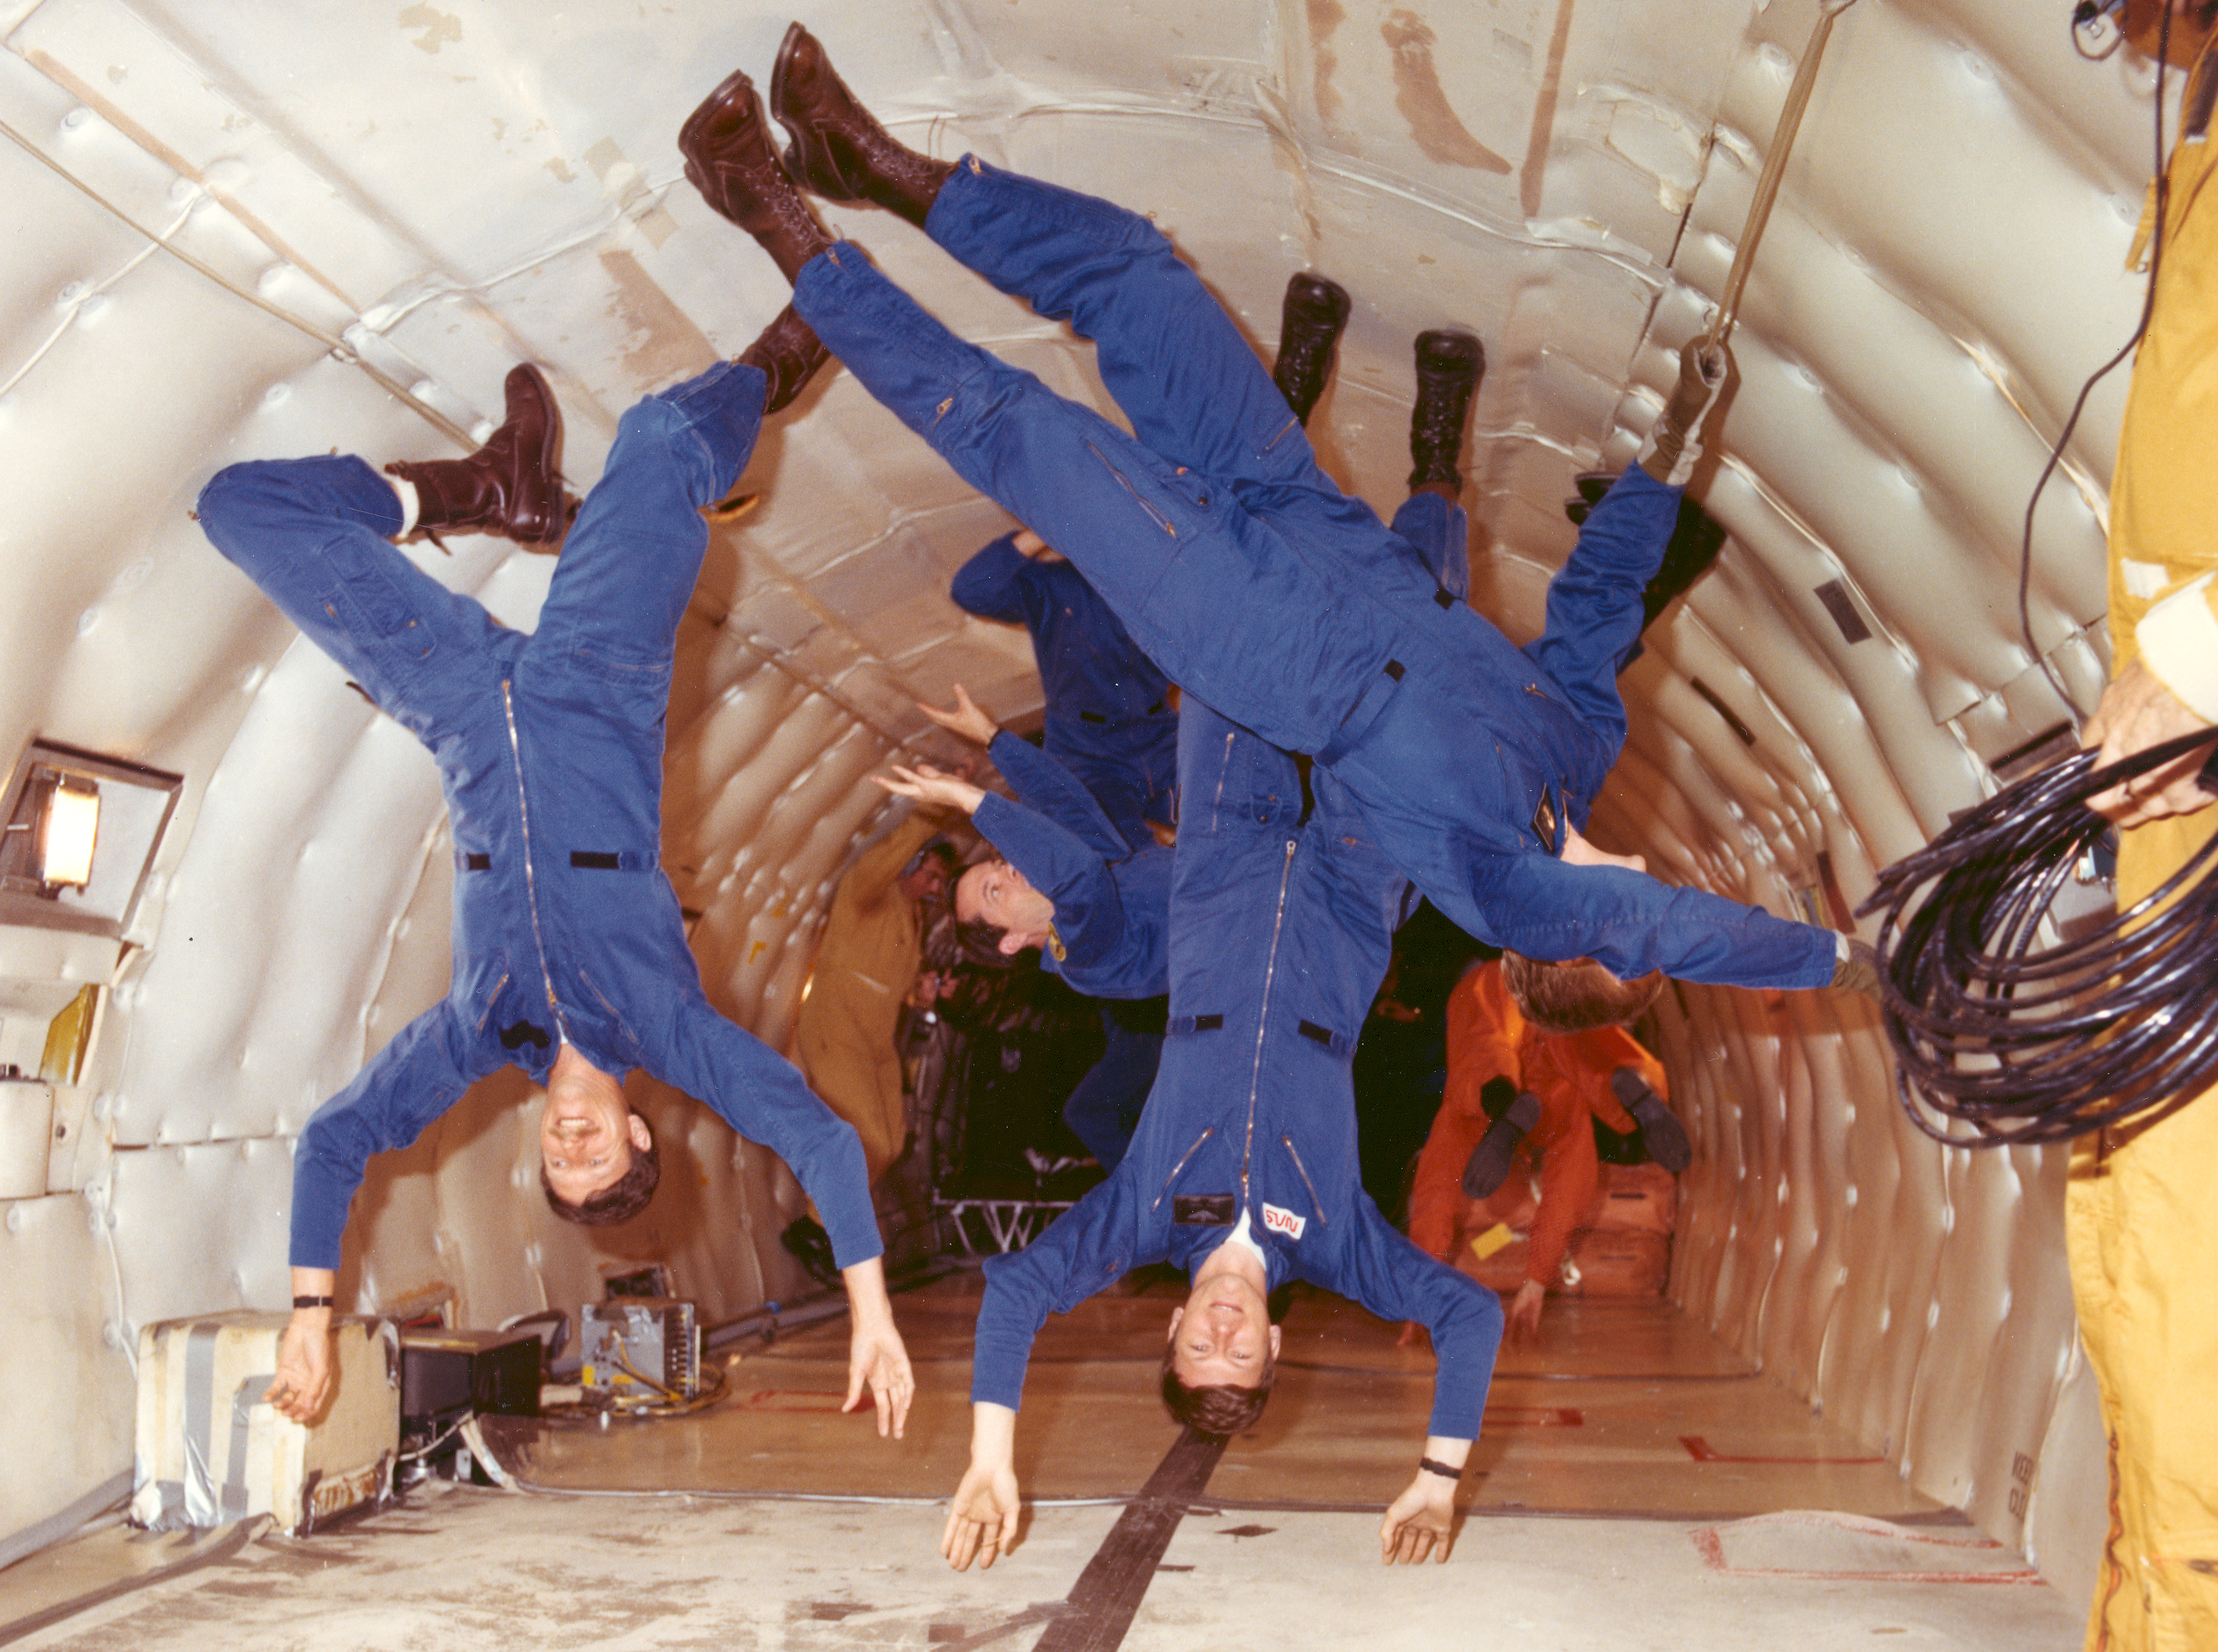 astronauts in space weightless - photo #3